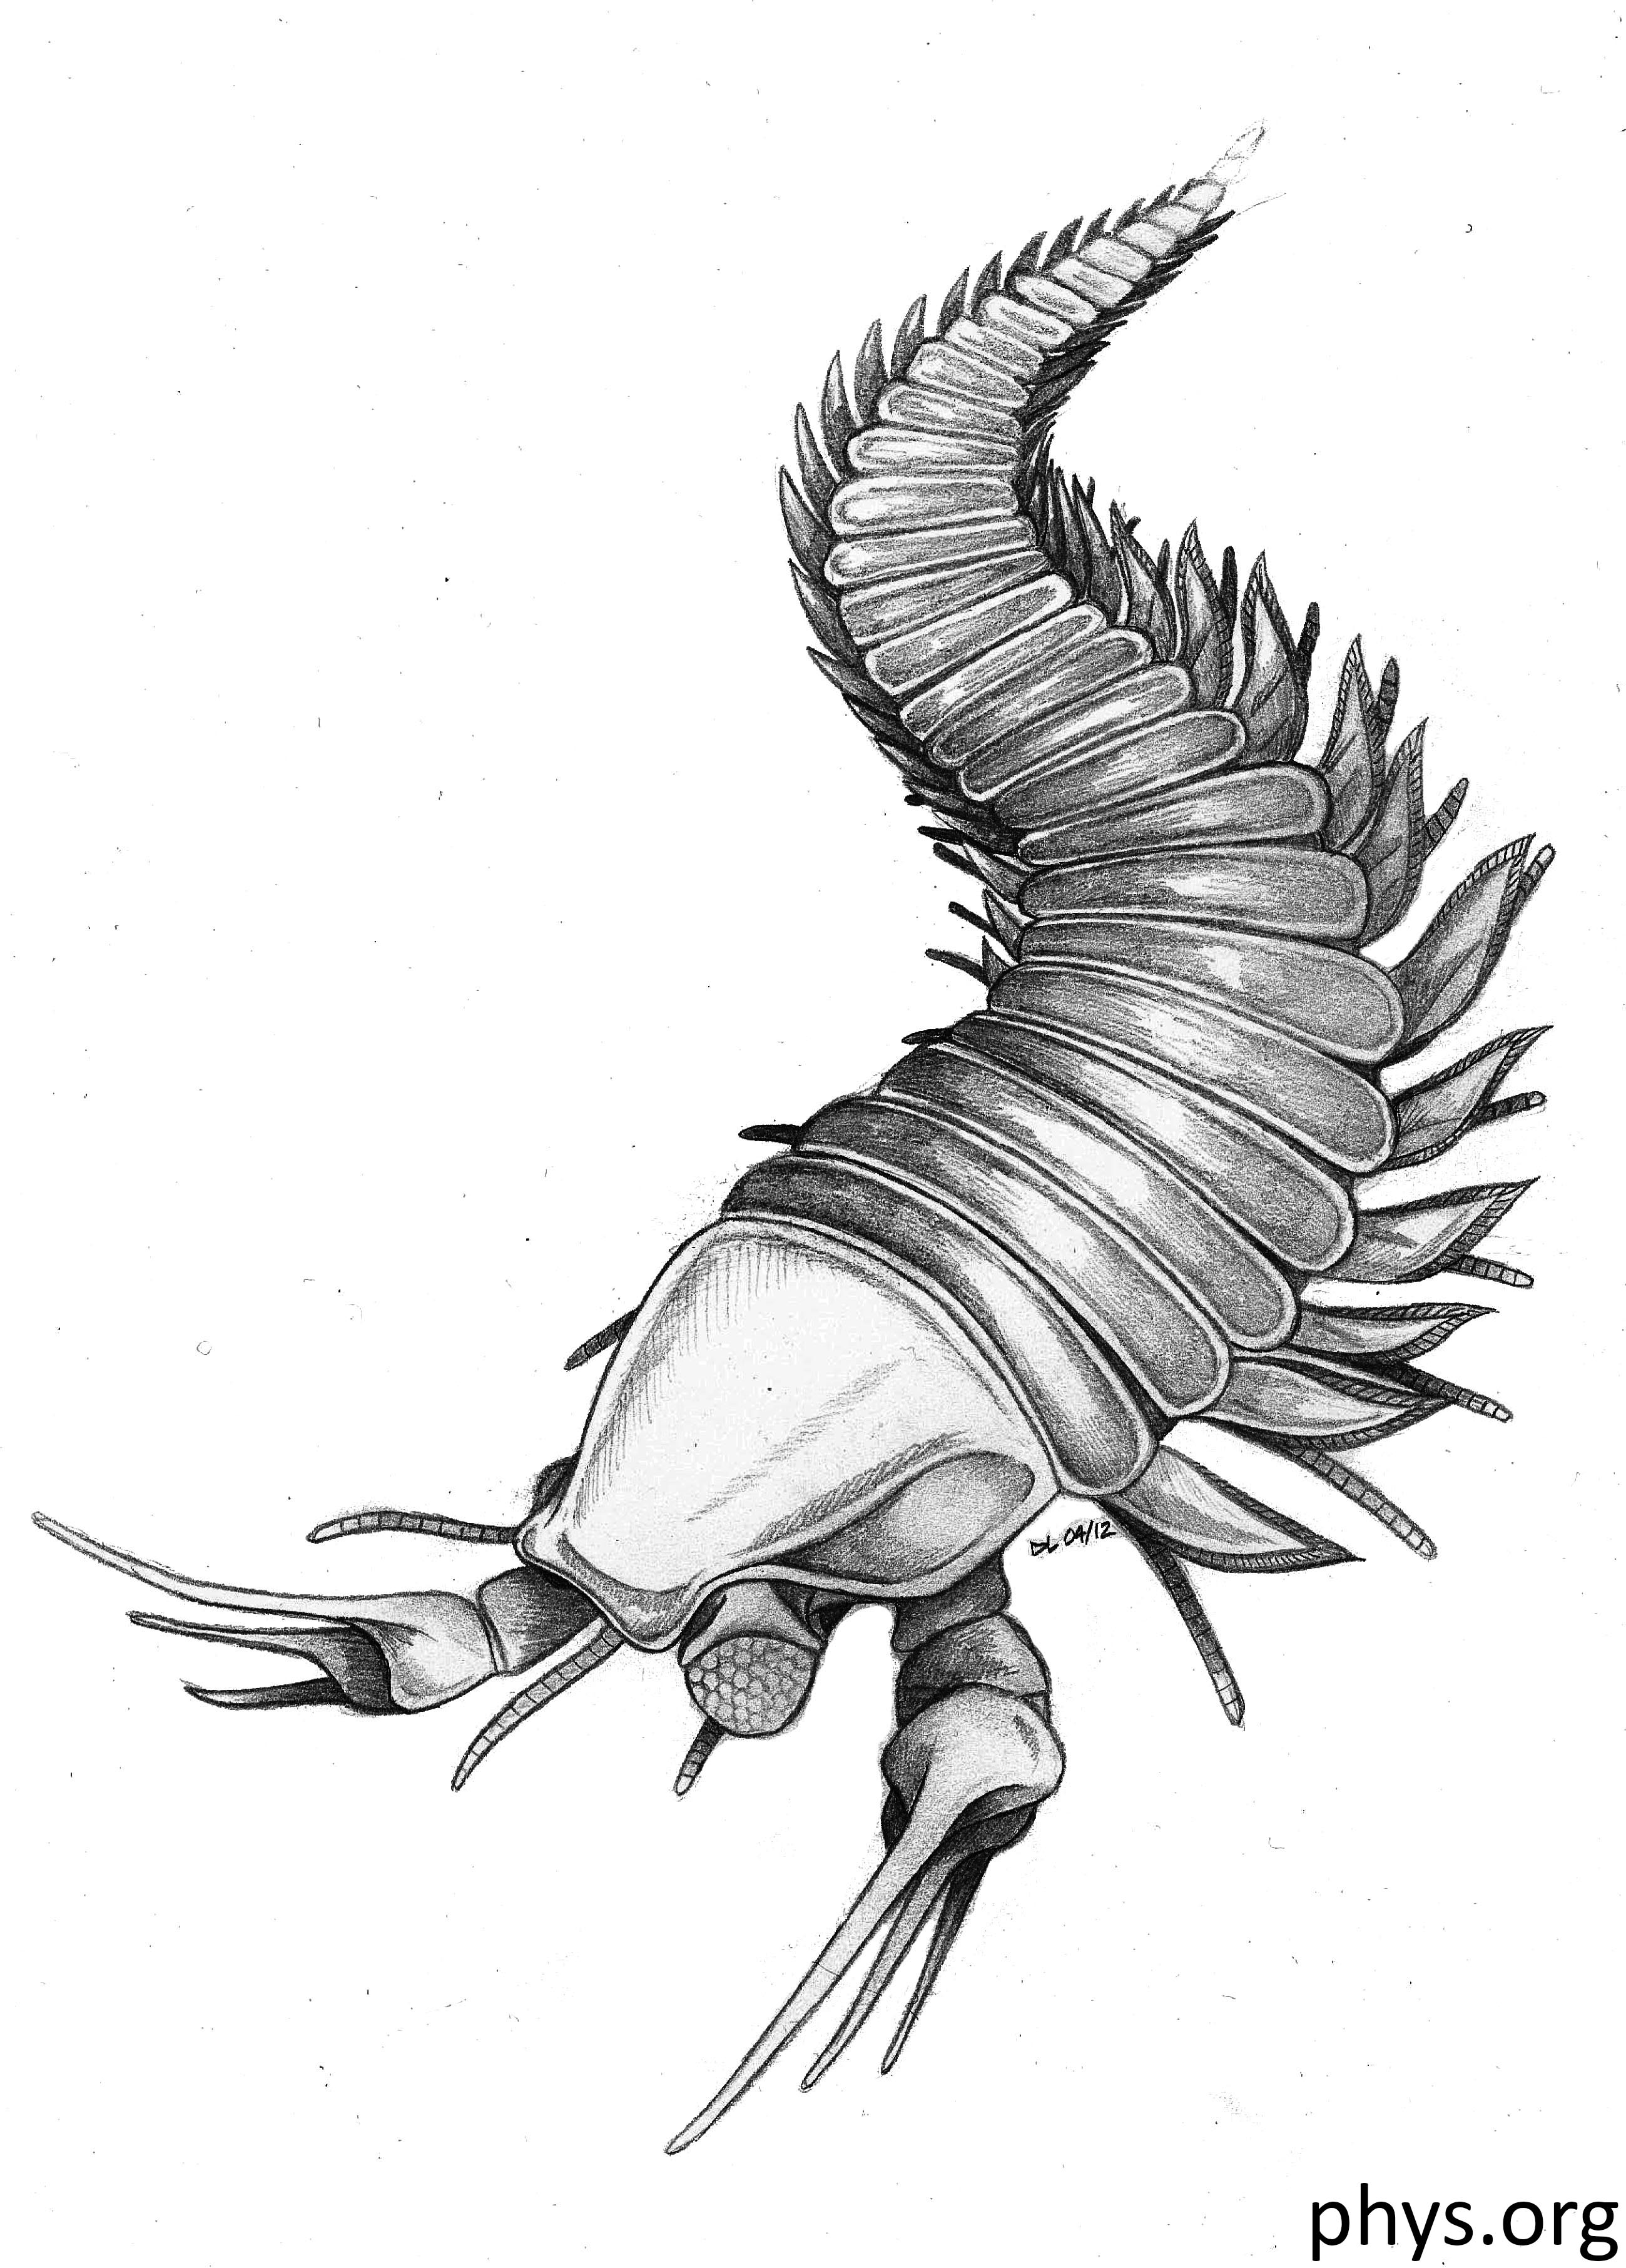 Edward Scissorhands – A scientist found a fossil of an extinct ancestor of lobsters and scorpions. It reminded him of Edward Scissorhands, so he named it Kooteninchela deppi, in honor of Johnny Depp who played the character, with 'chela' the Latin name for claws or scissors. Article by Daniel Geary, Atmosphere Resort Philippines